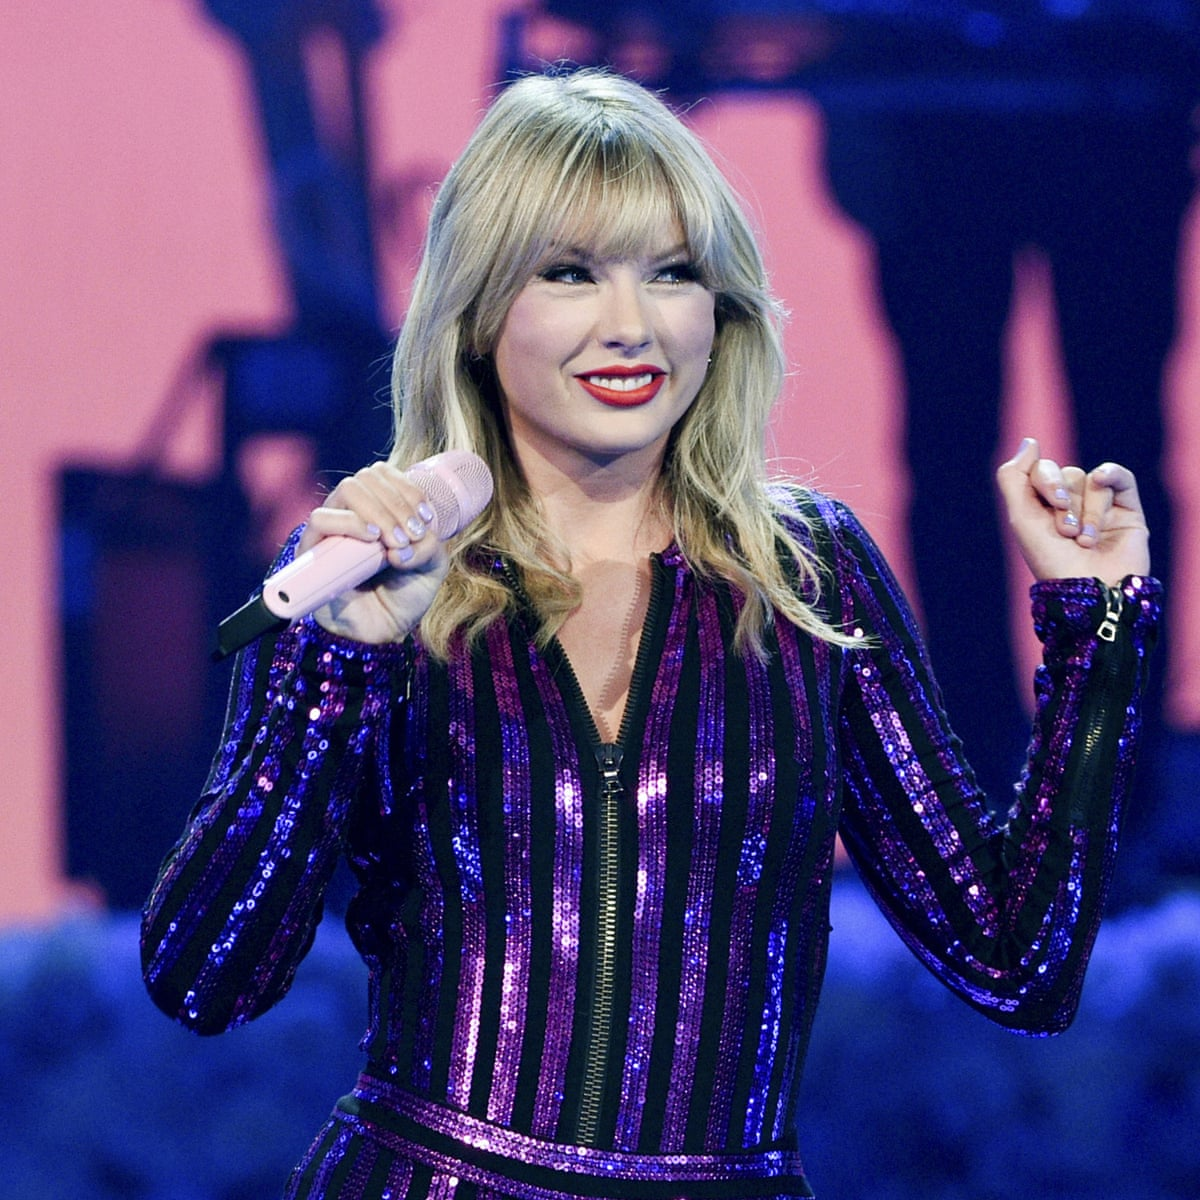 Taylor Swift Cleared To Perform Old Songs At Amas After Label Backs Down Music The Guardian